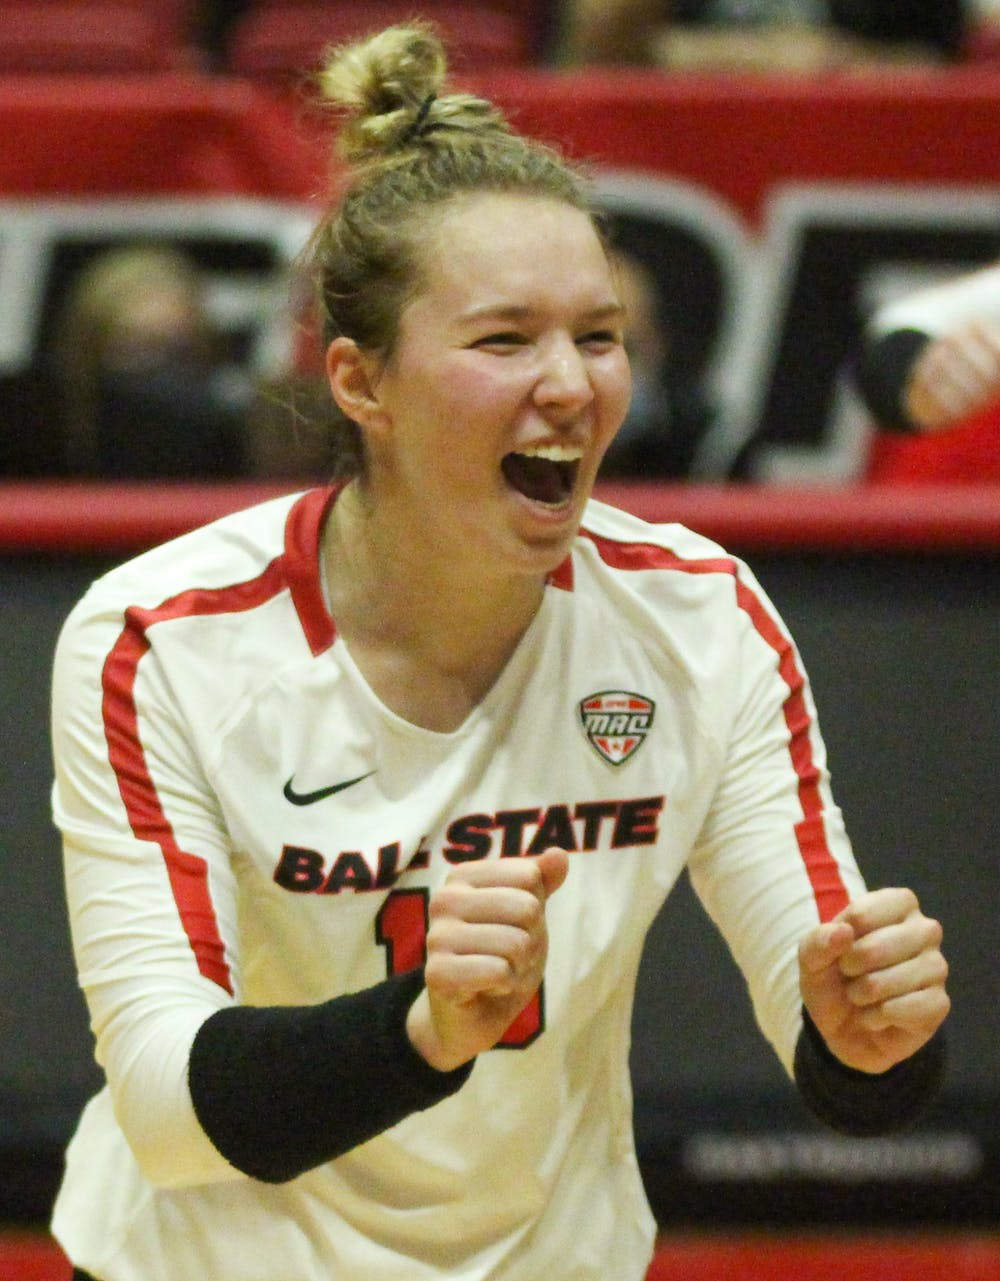 New court, same sport: A look at freshman setter Megan Wielonski's transition from high school to college volleyball